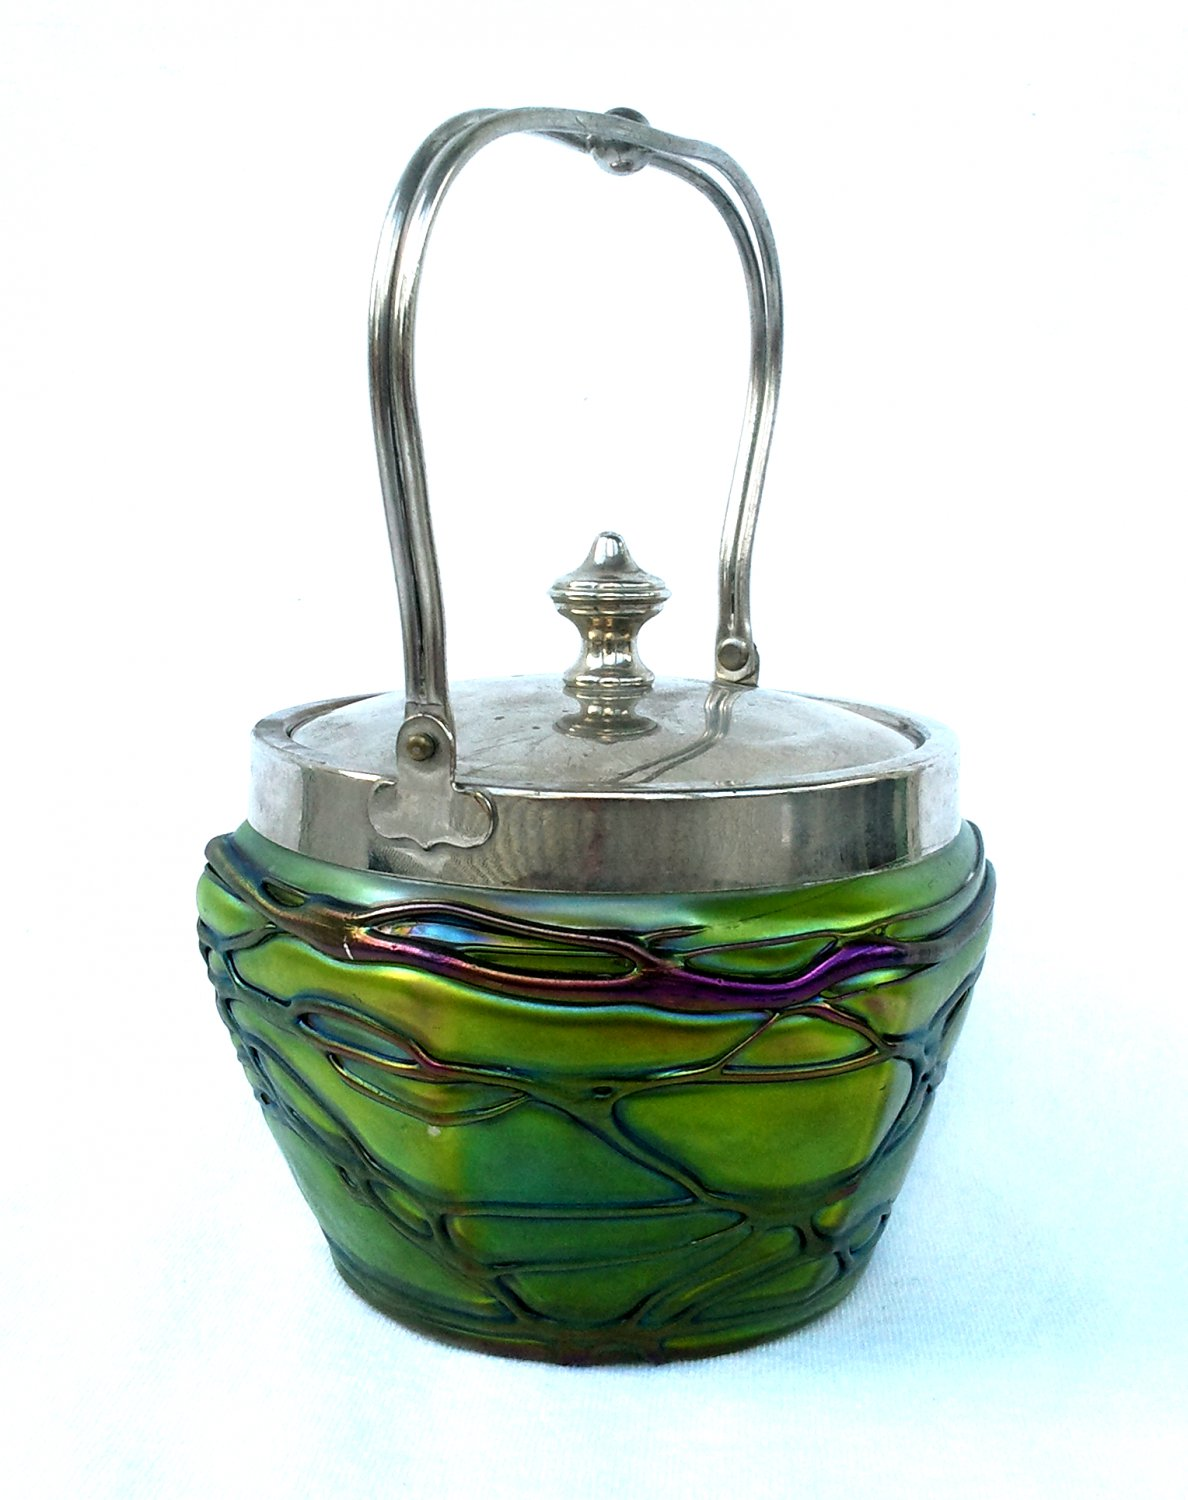 Iridescent Art Glass Biscuit Jar Green with Amethyst Threading has Silver Lid Pallme-Konig Ca. 1900